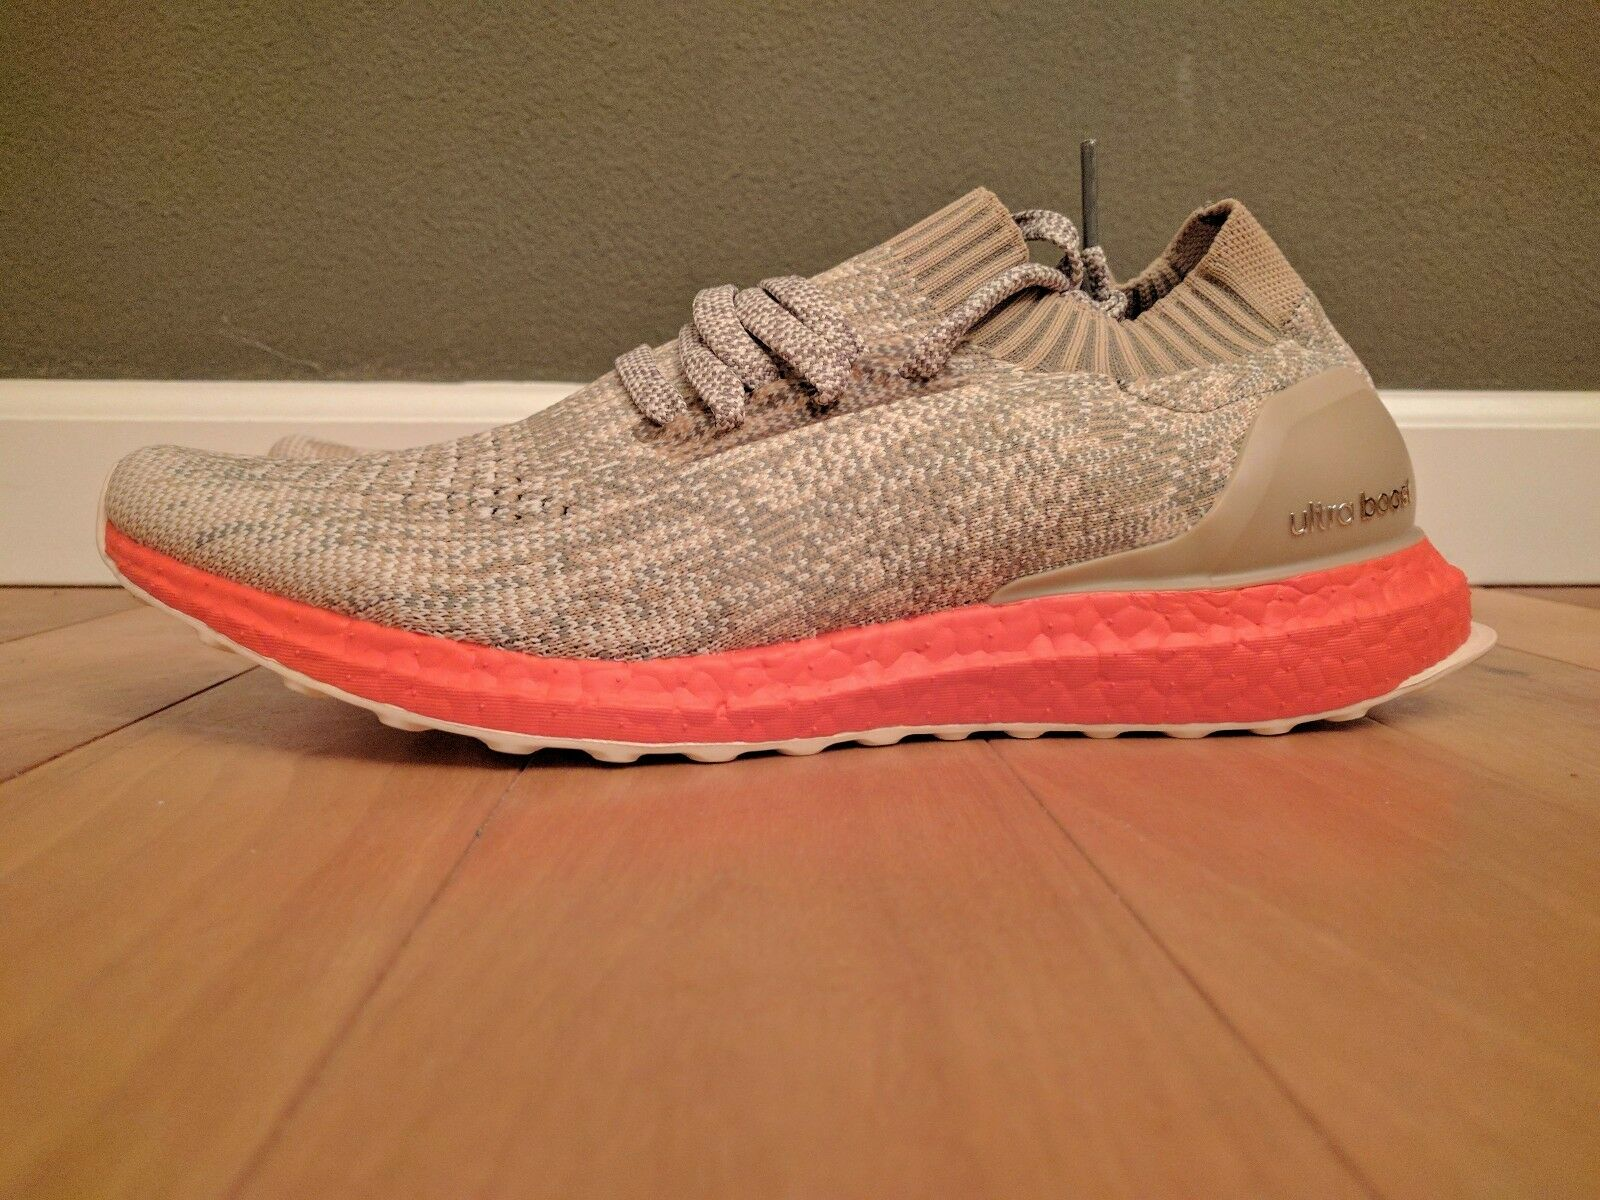 Adidas UltraBOOST Uncaged 10.5 - Trace Cargo Khaki-Orange